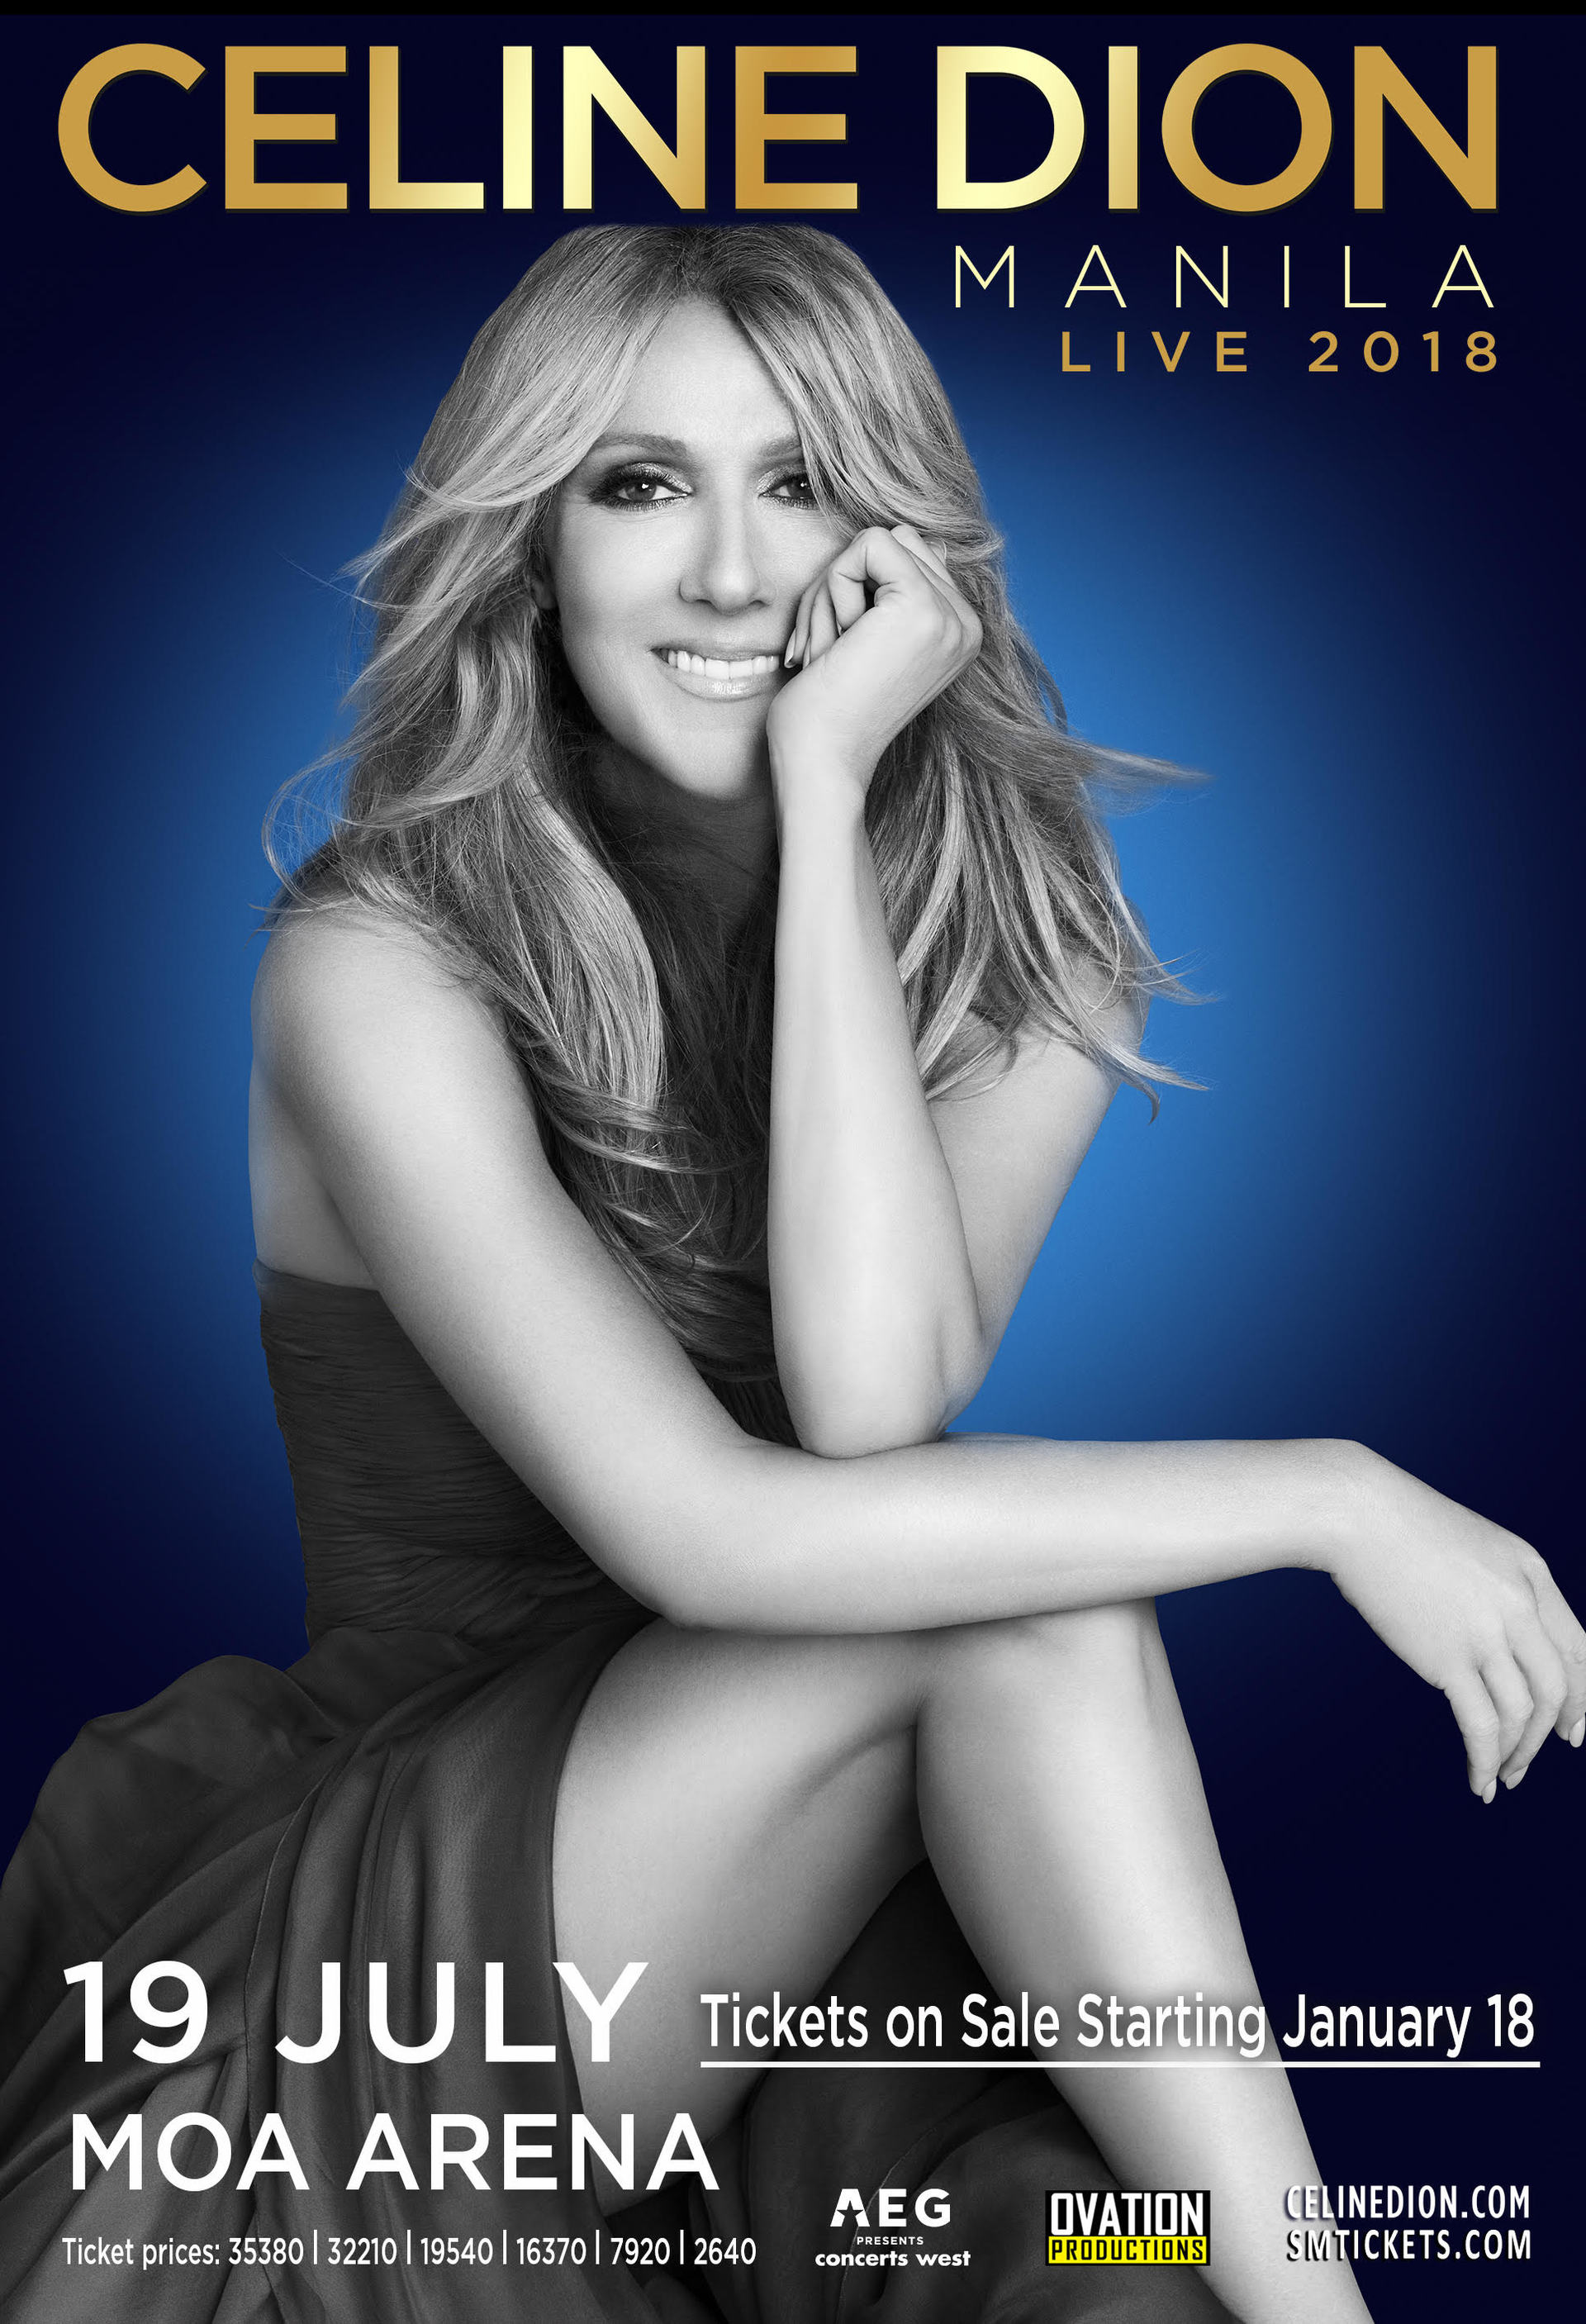 Celine Dion Is Coming To Manila Ticket Prices Revealed